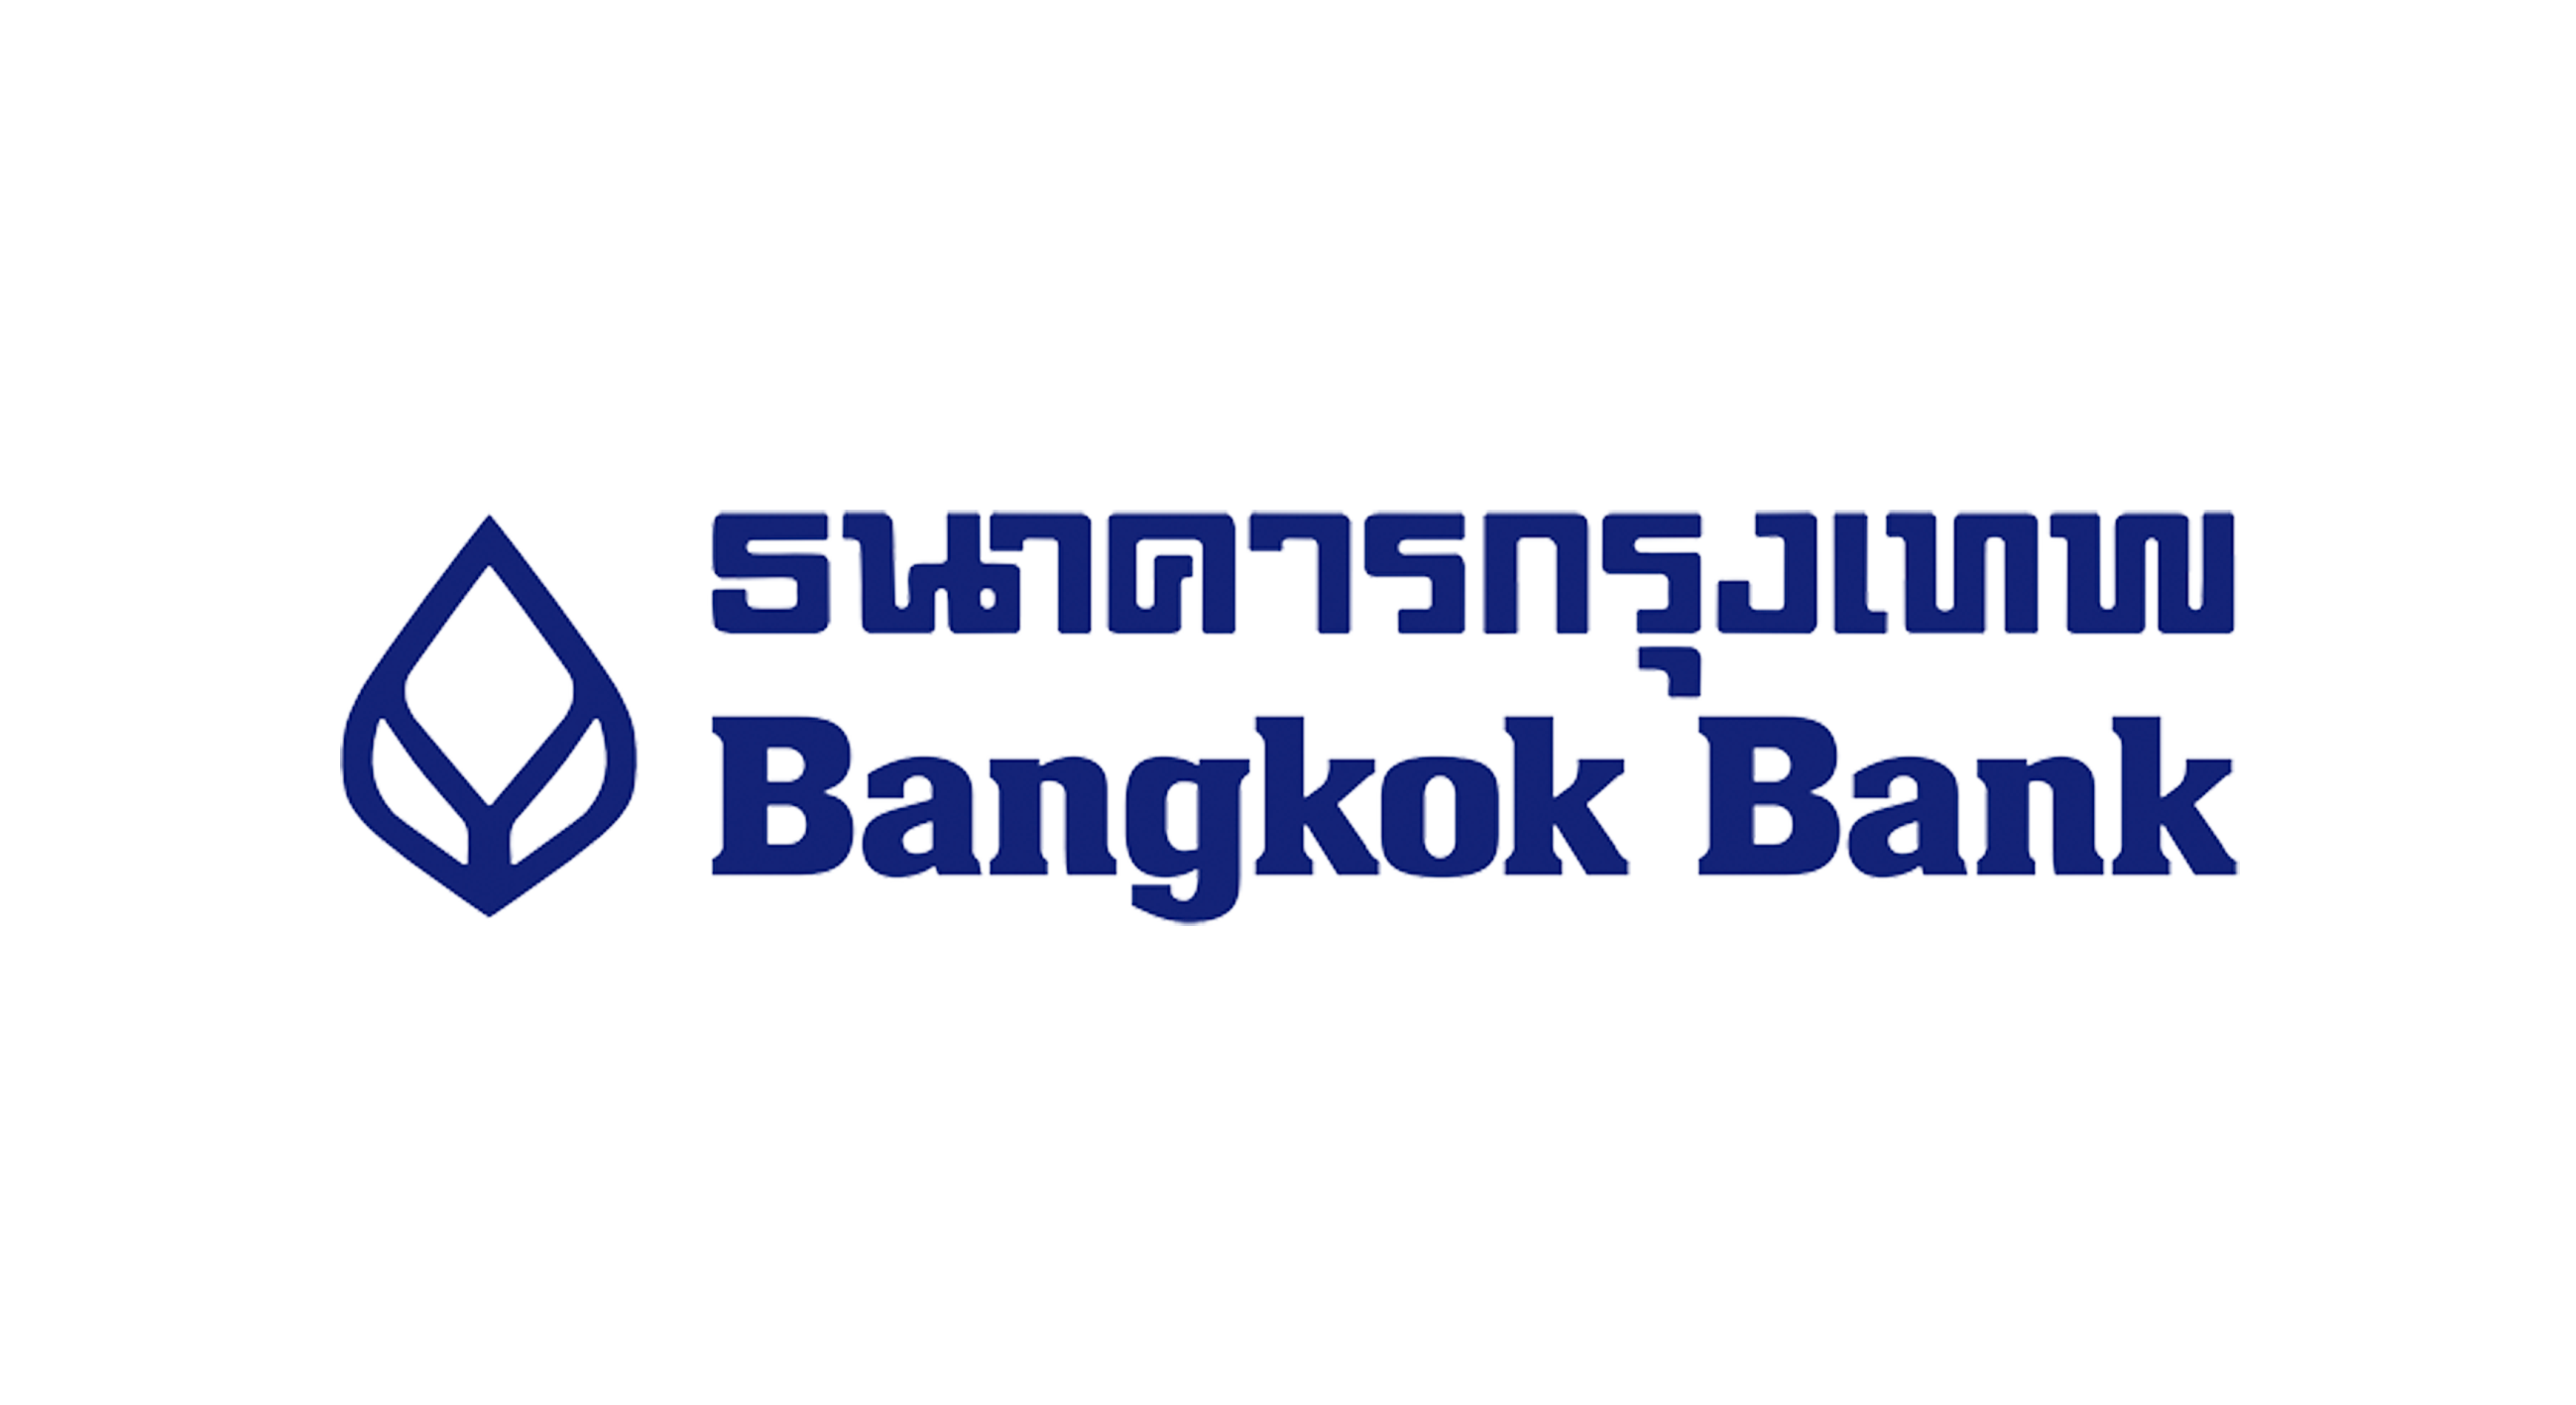 bangkok bank swift